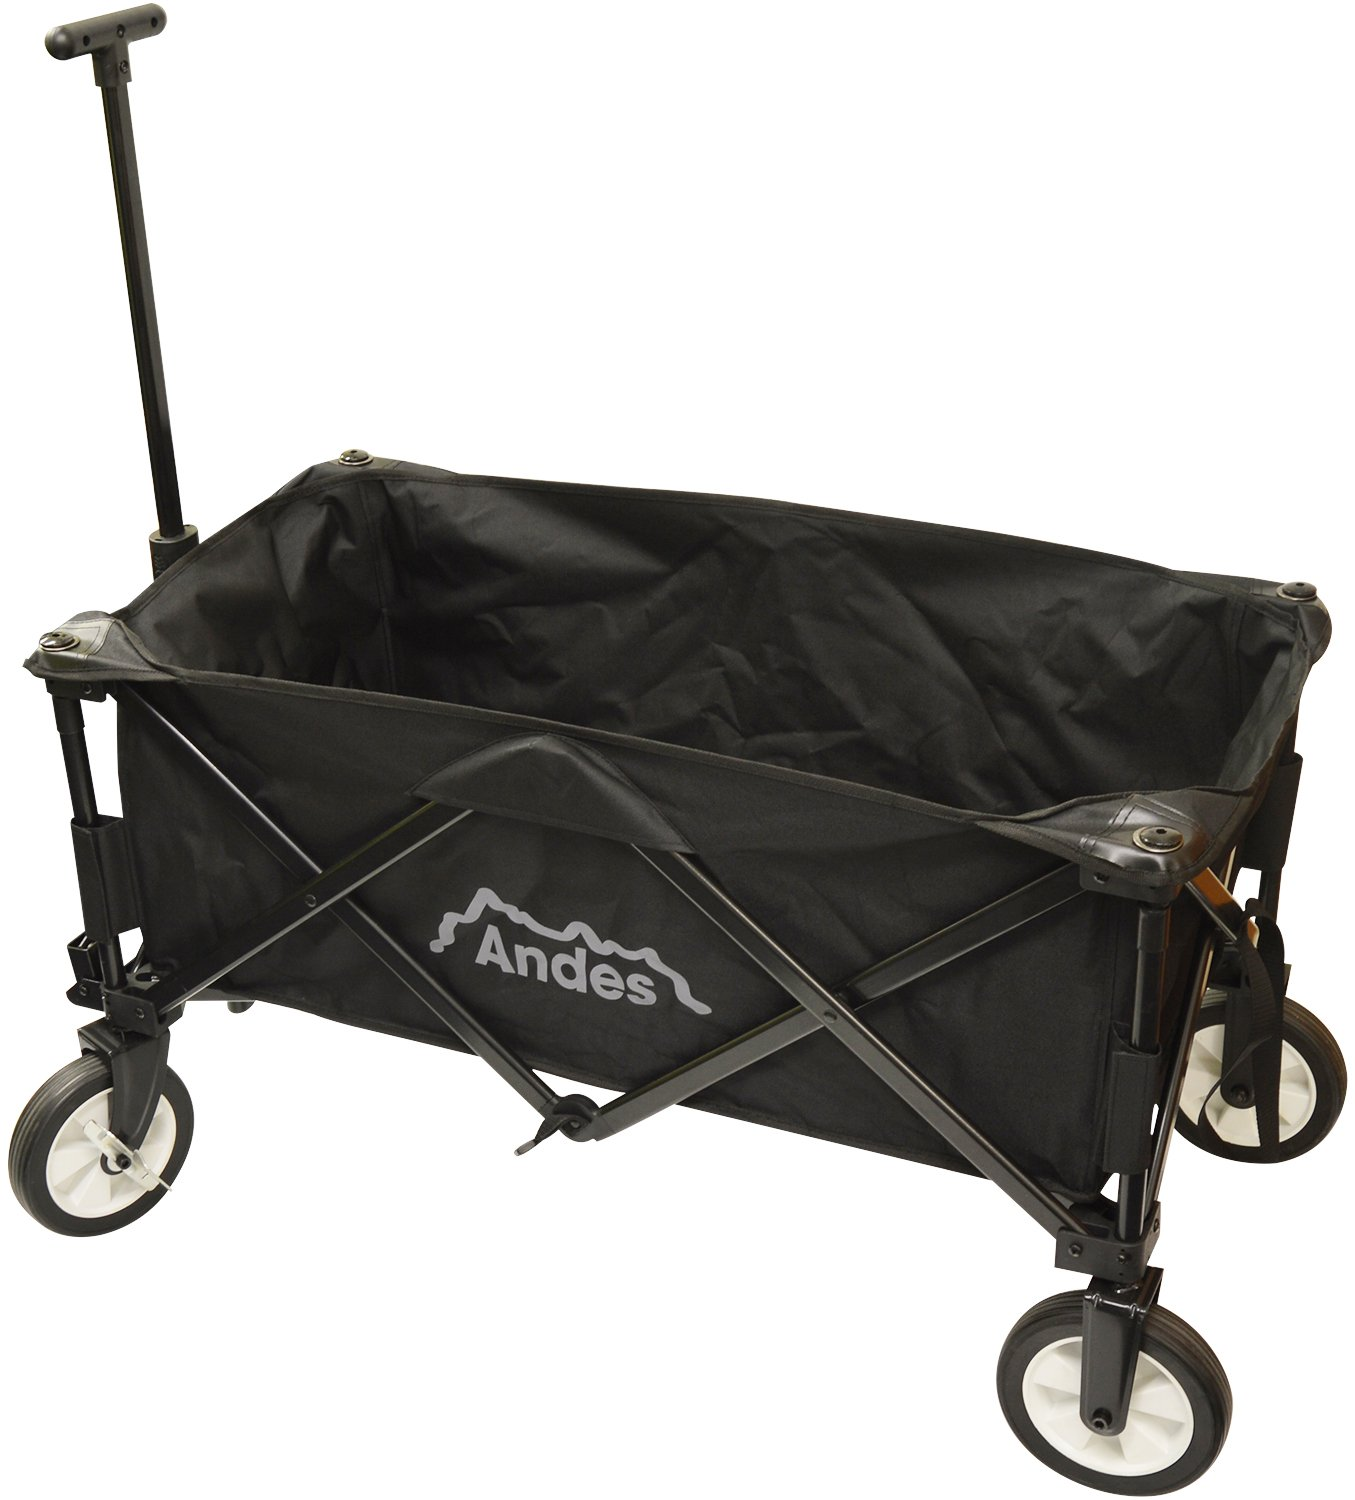 FOLDING FESTIVAL TROLLEY CAMPING PULL ALONG TROLLEY WAGON TRAILER CART